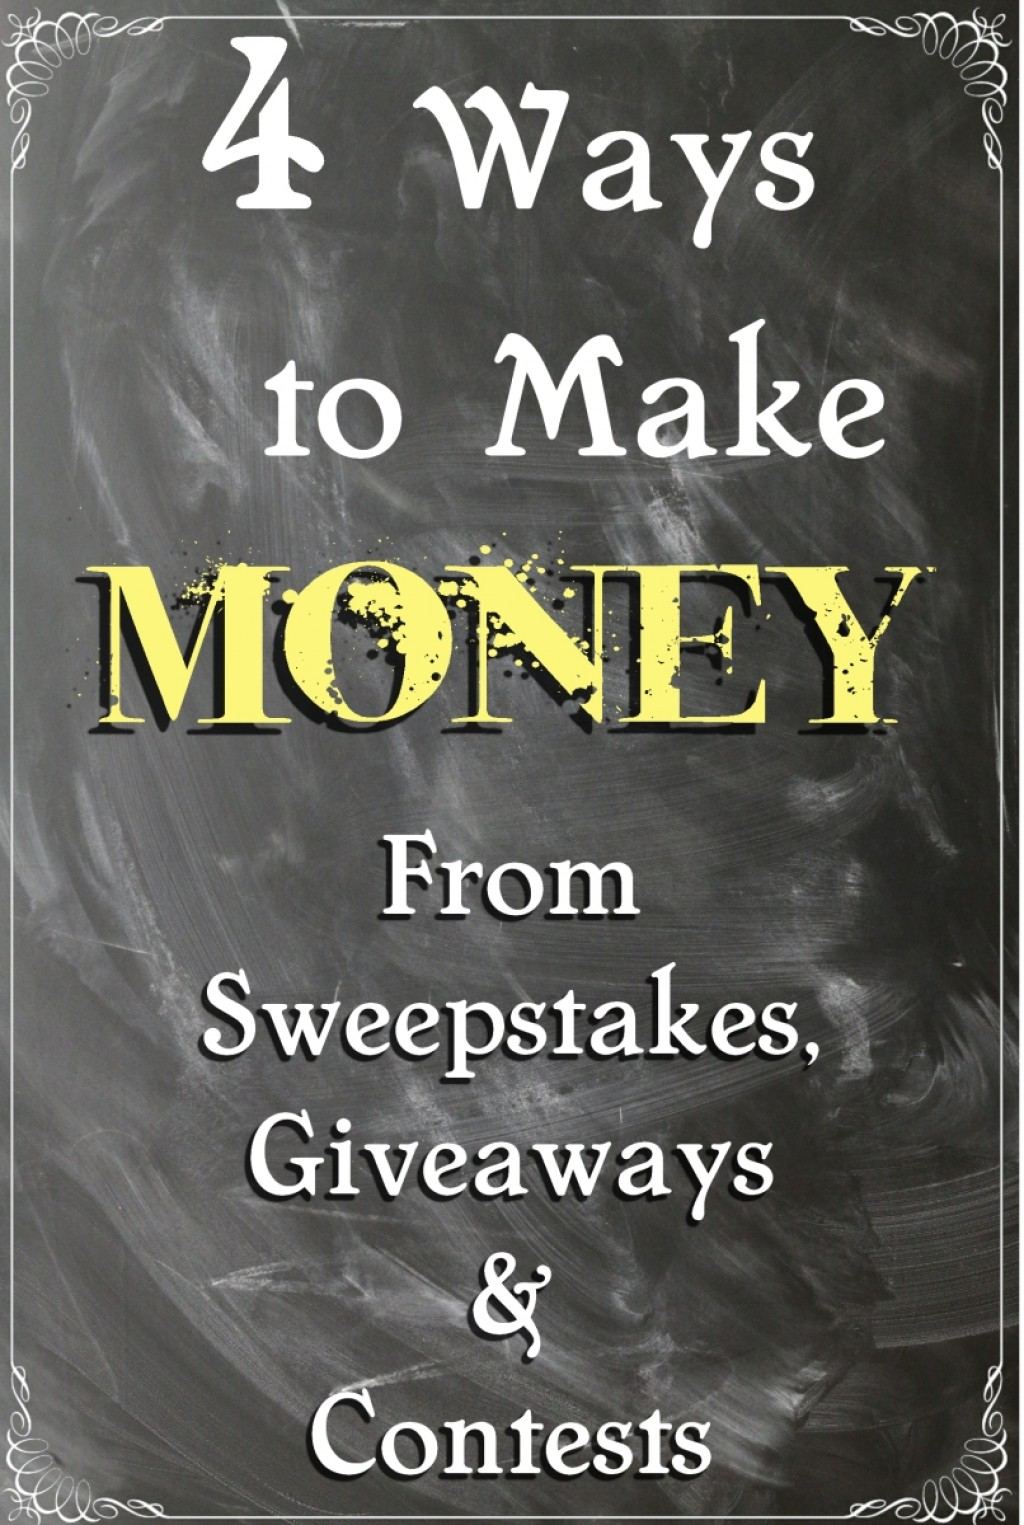 4 Ways to Make Money From Sweepstakes, Giveaways and Contests ...